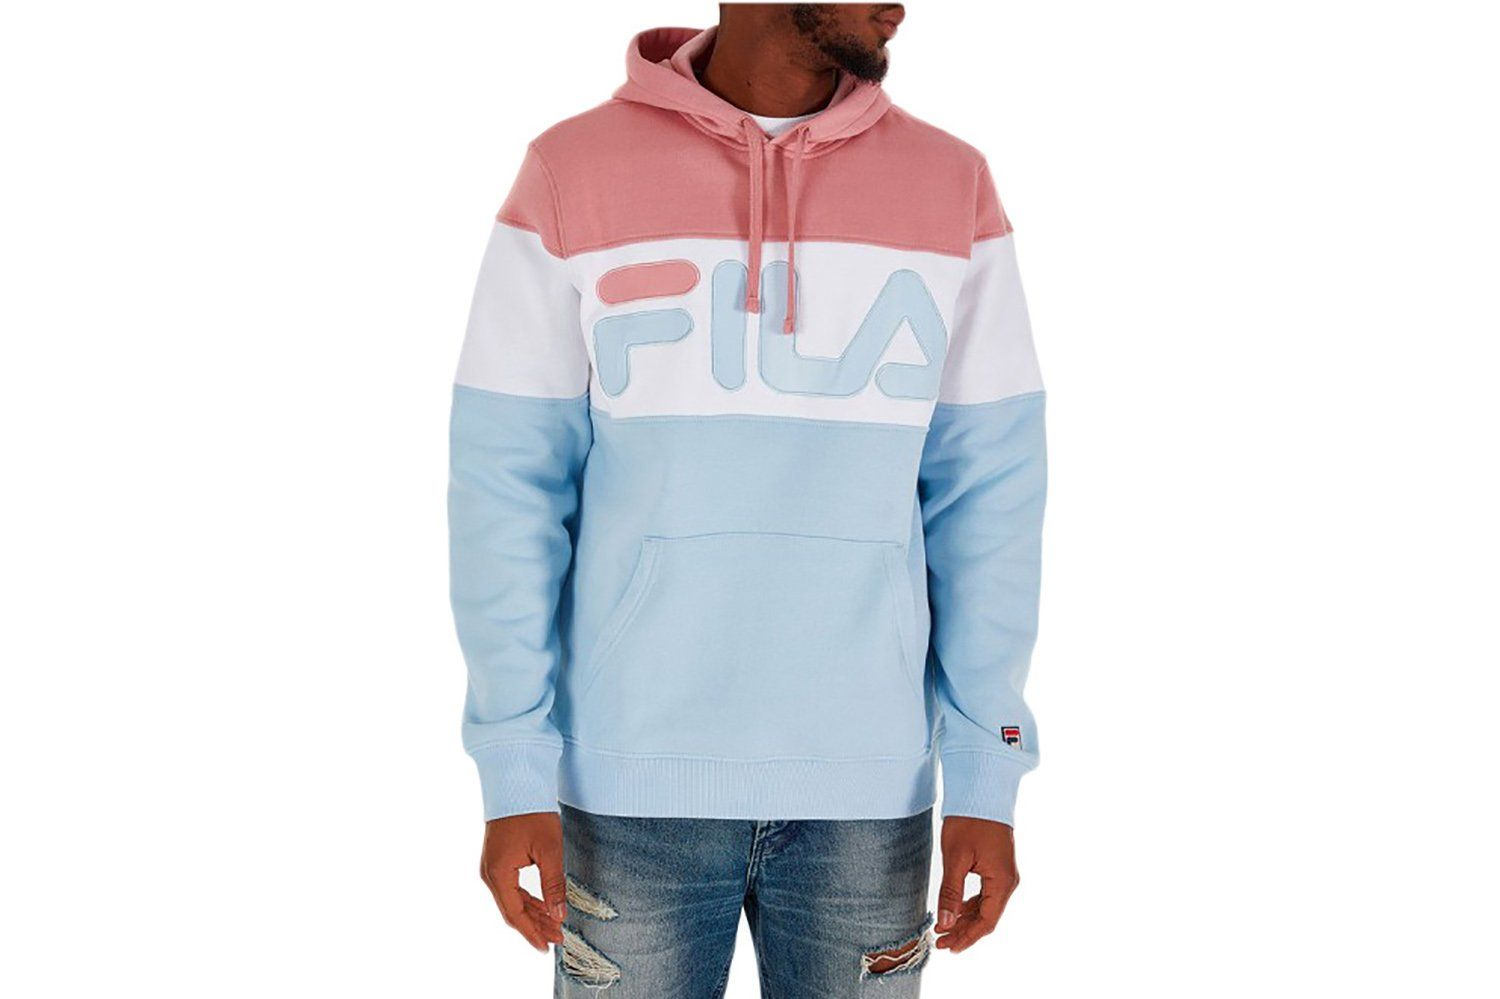 13827d1ab6d1 FLAMINO FLEECE HOODY - LM183420-967 MENS SOFTGOODS FILA